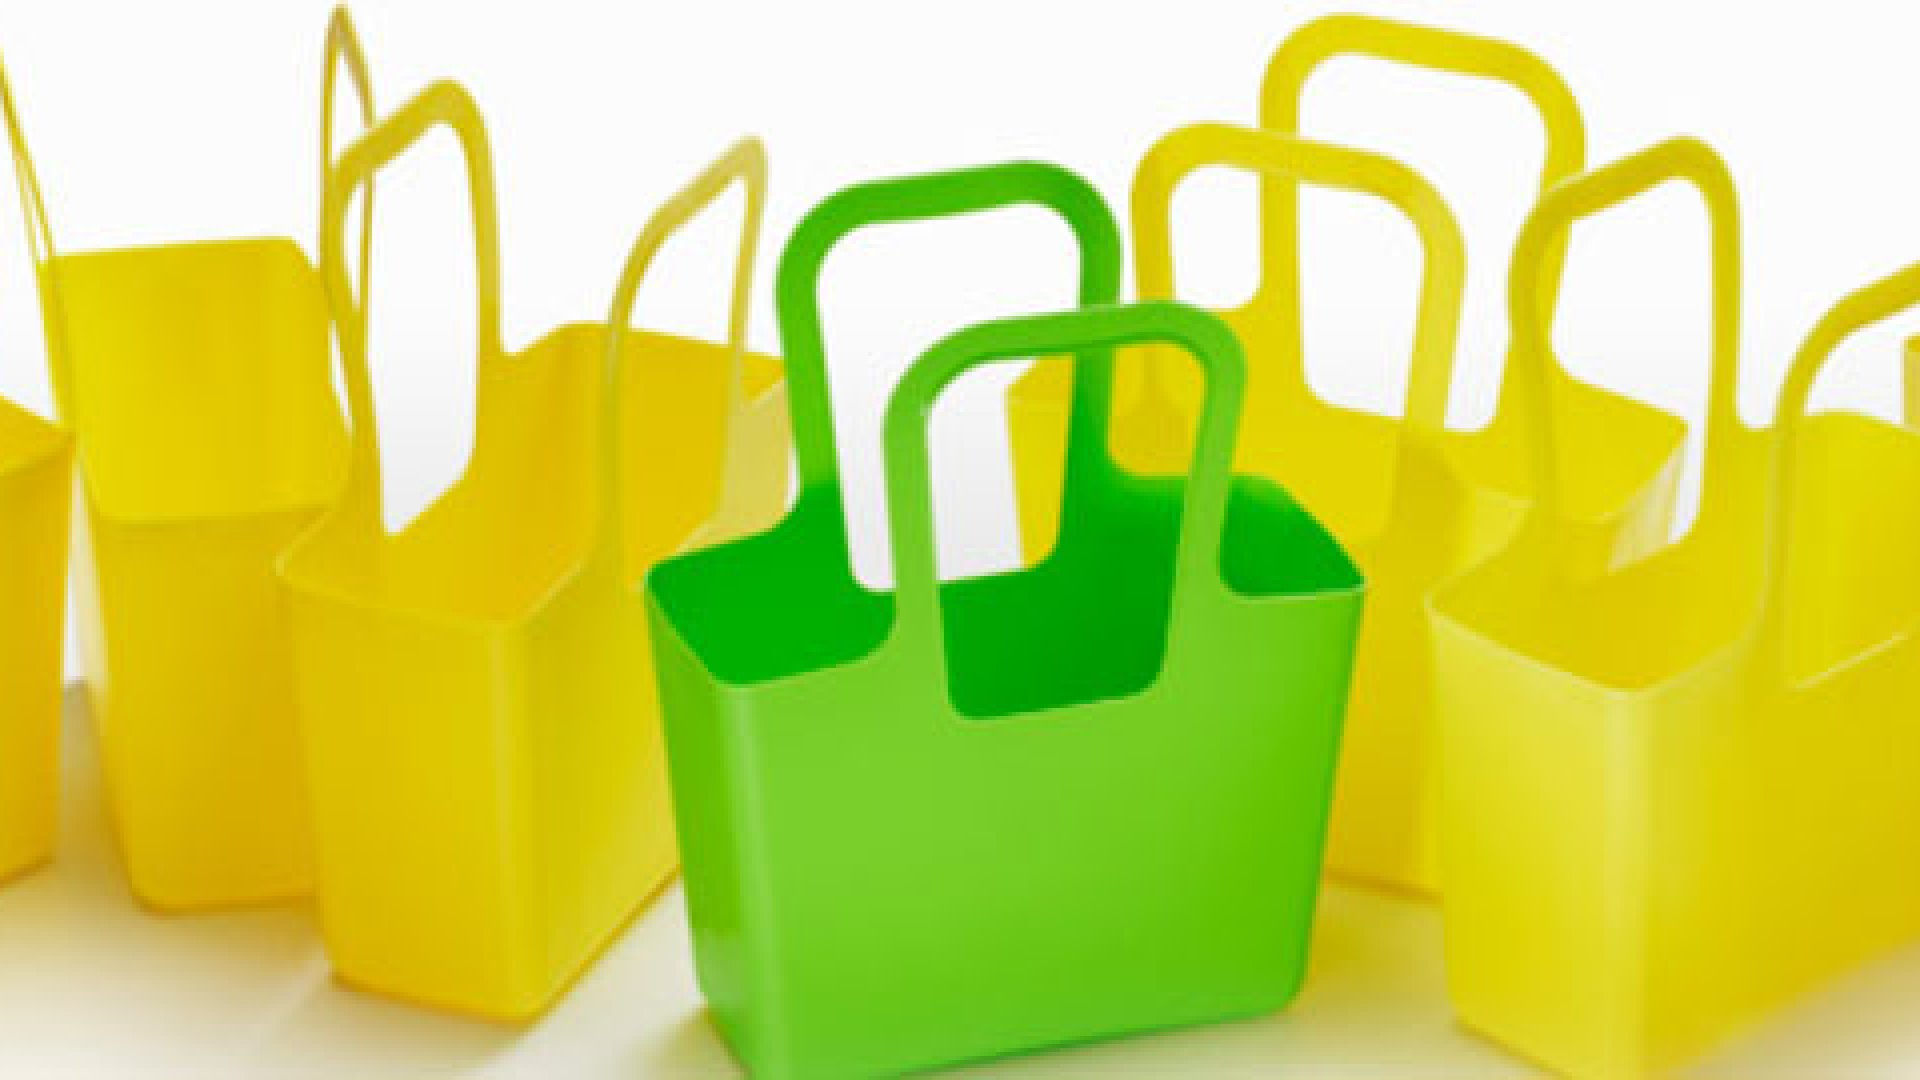 How to Bring an Ecofriendly Product to Market